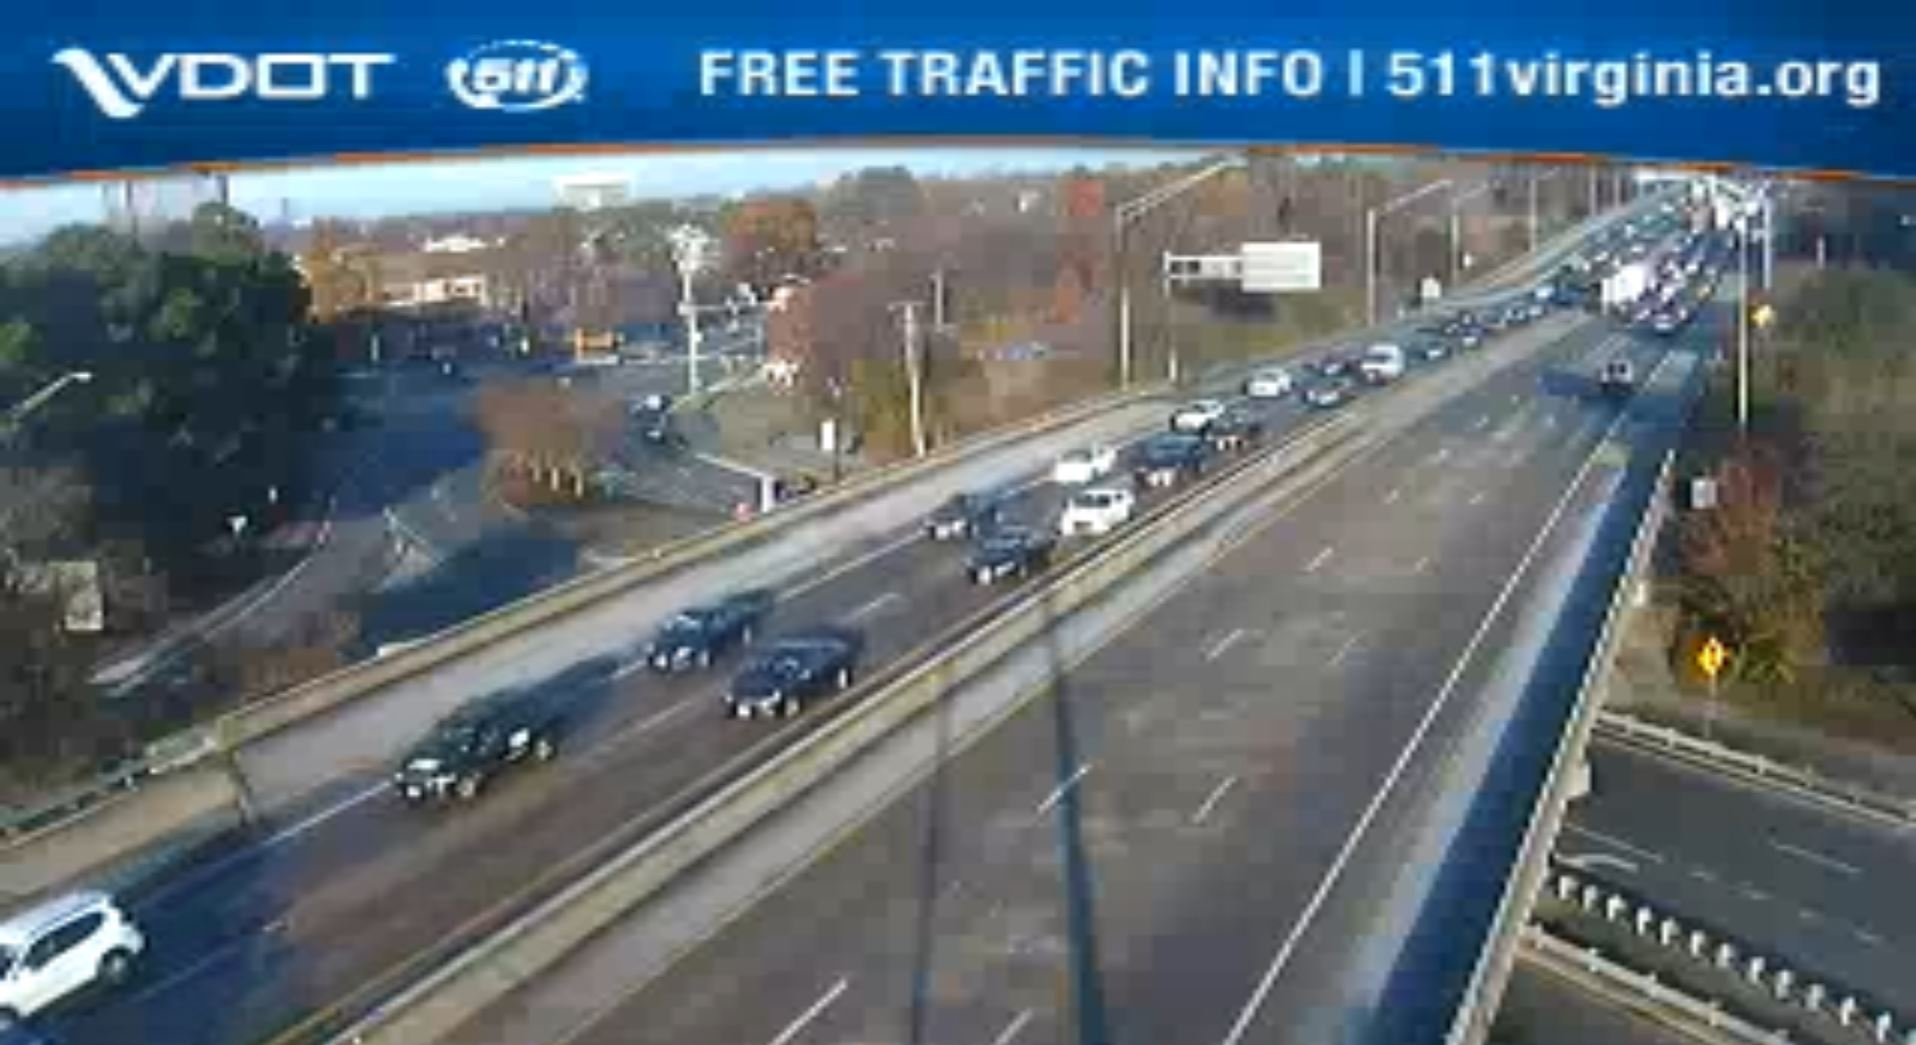 State police: One person killed in crash on I-64 in Hampton